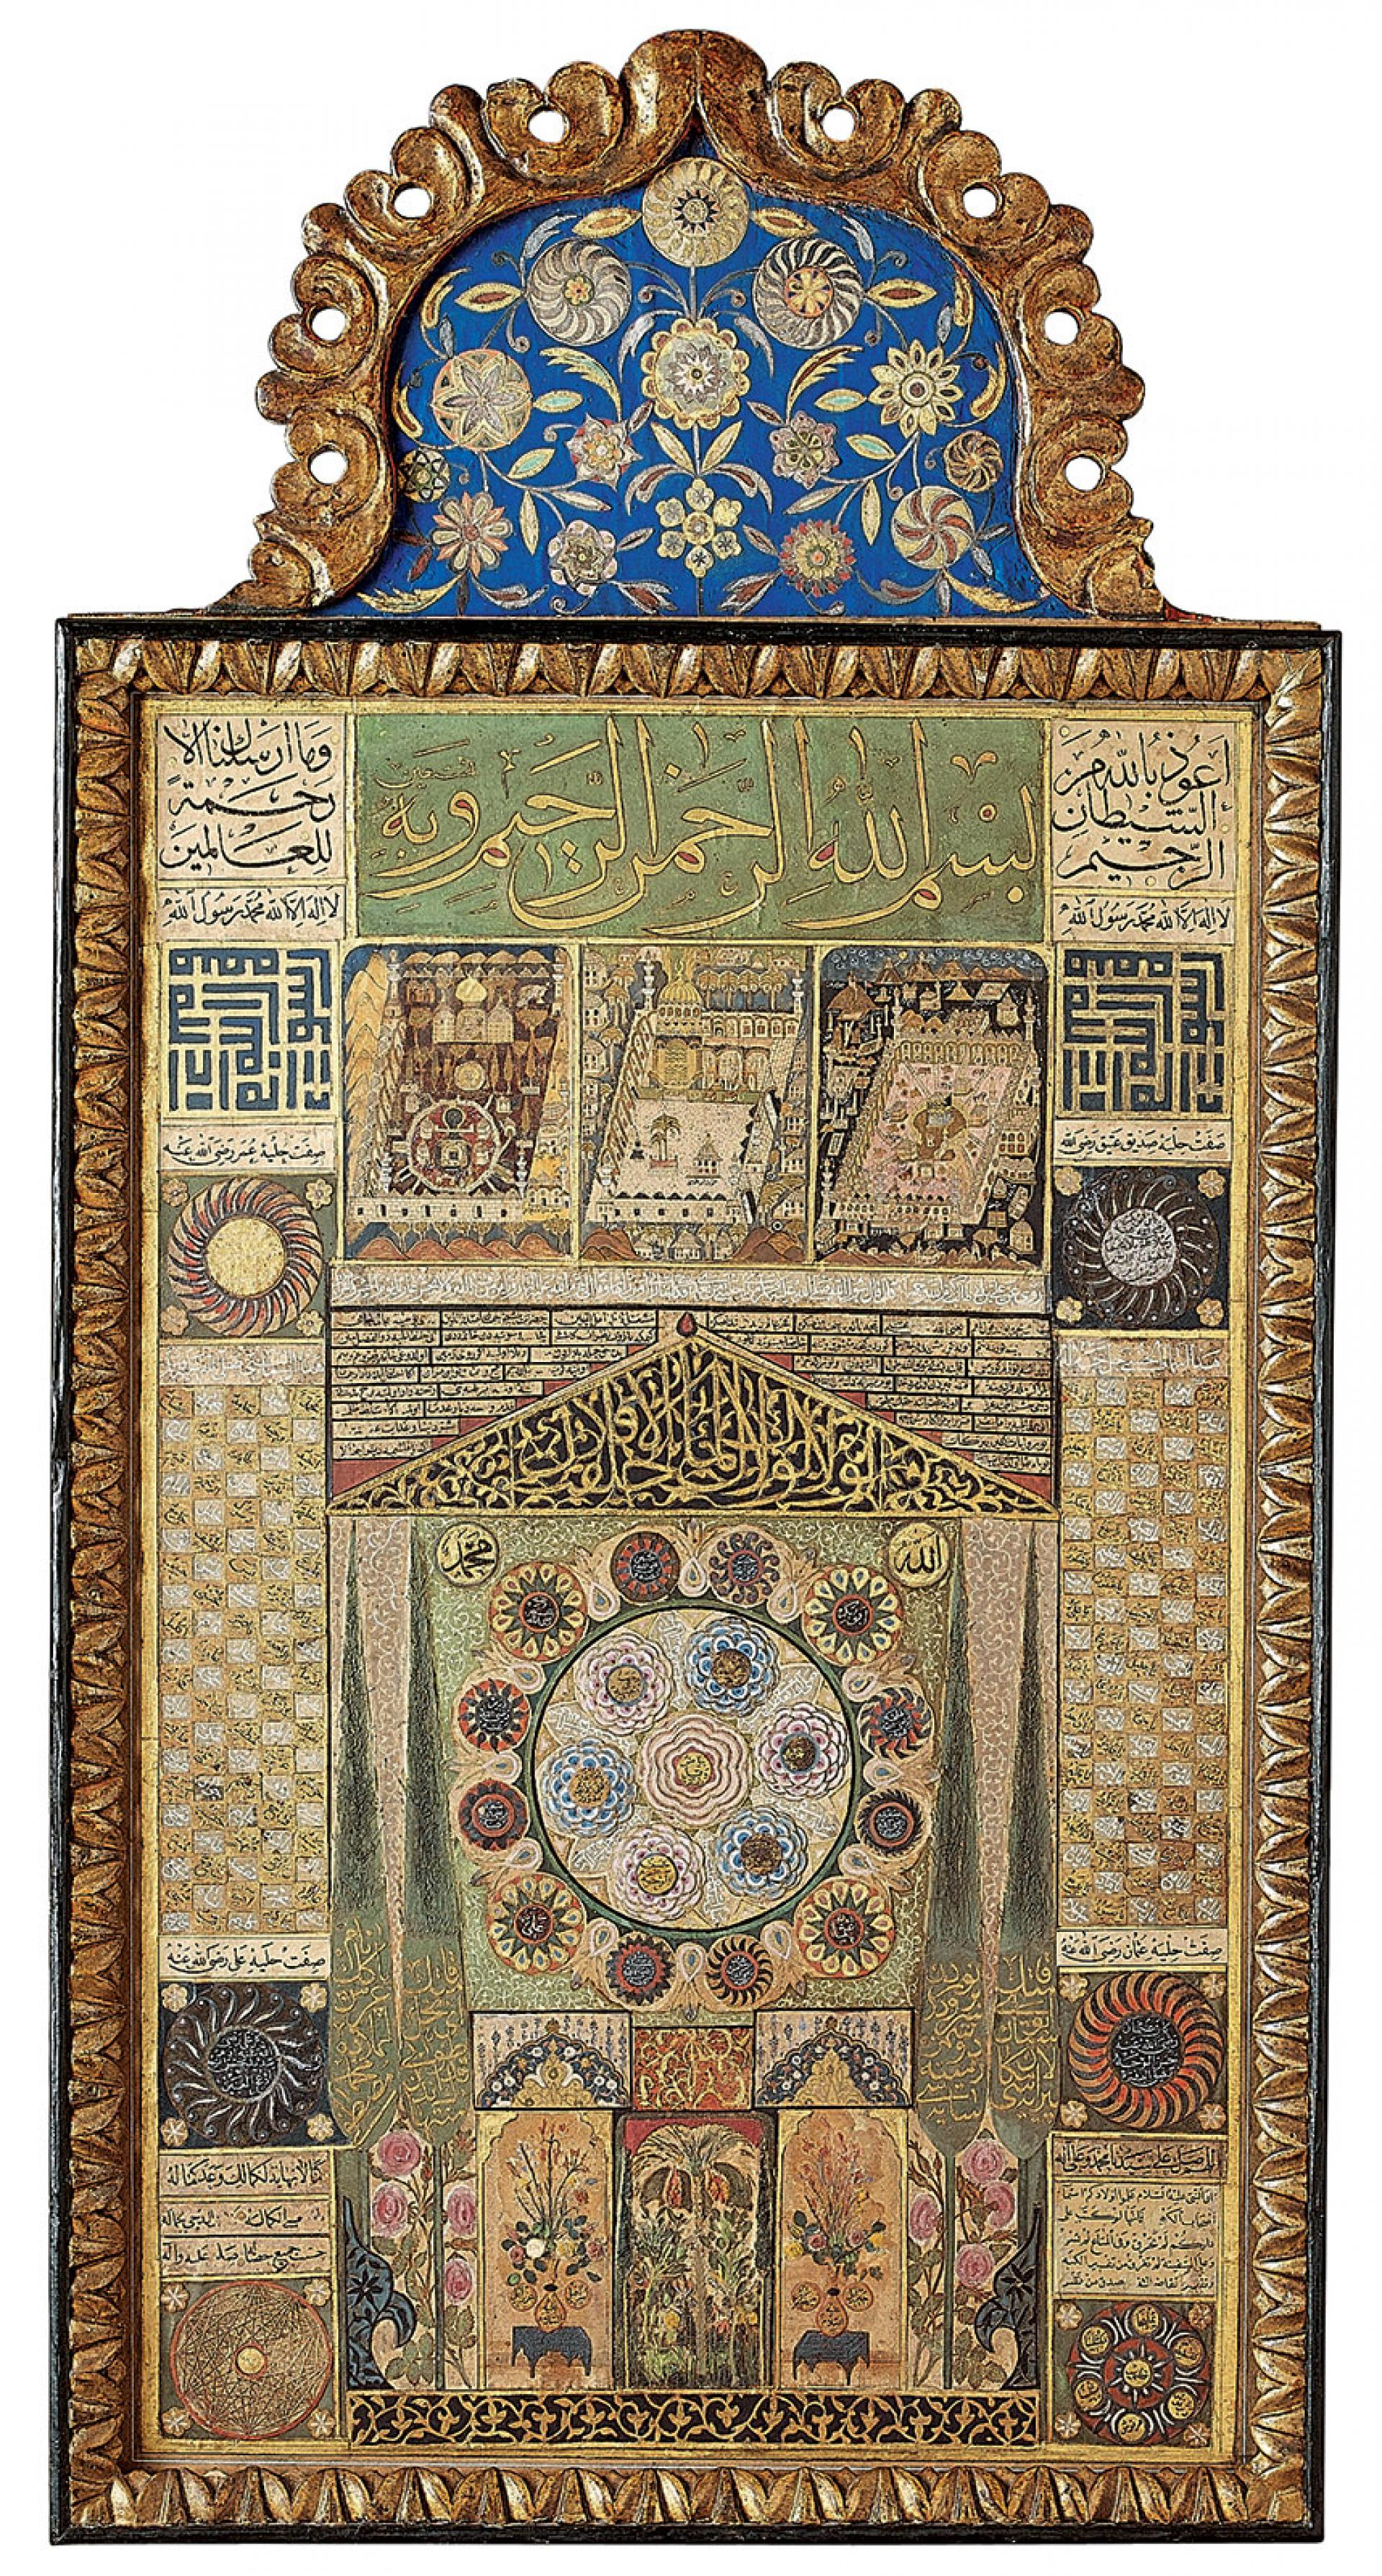 SHM15501 - Hilye-i SherifOttoman, 18th centuryColorful papers - black ink - gold - paint